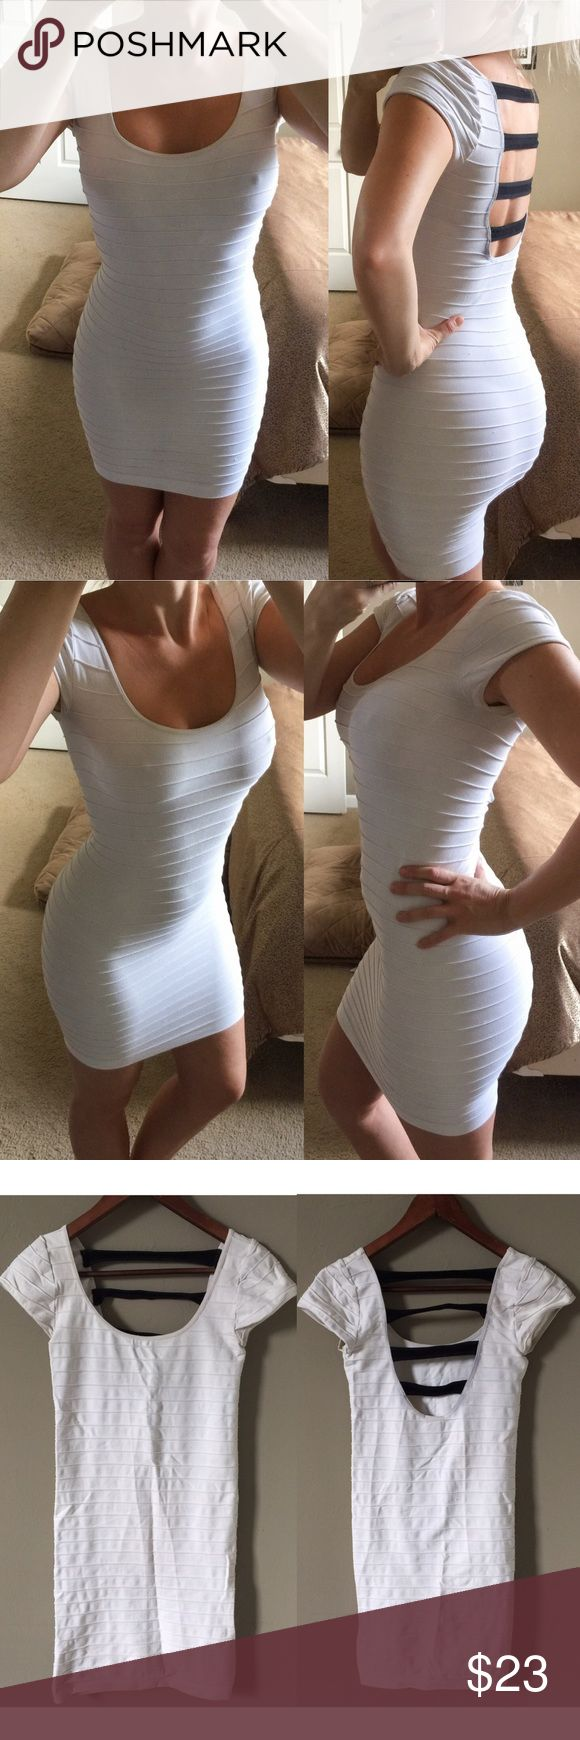 HP🎉 Bebe white ribbed strappy bandage dress S P ~~*~~ 🎉 HP Wardrobe Goals on 7/24 🎉 ~~*~~  ⚜️Bebe Bandage Dress⚜️ 🔸White stretchy dress 🔸Ribbed to enhance curves 🔸Ultra stretchy for perfect fit 🔸Above knee but almost a midi cut 🔸Strappy open back 🔸Worn several times, shows a little wear  ⚜️Size Small Petite 🔸I'm a small regular and it fits me well   •🔸• ⚜️ •🔸• No Holds/Trades •🔸• ⚜️ •🔸• bebe Dresses Midi